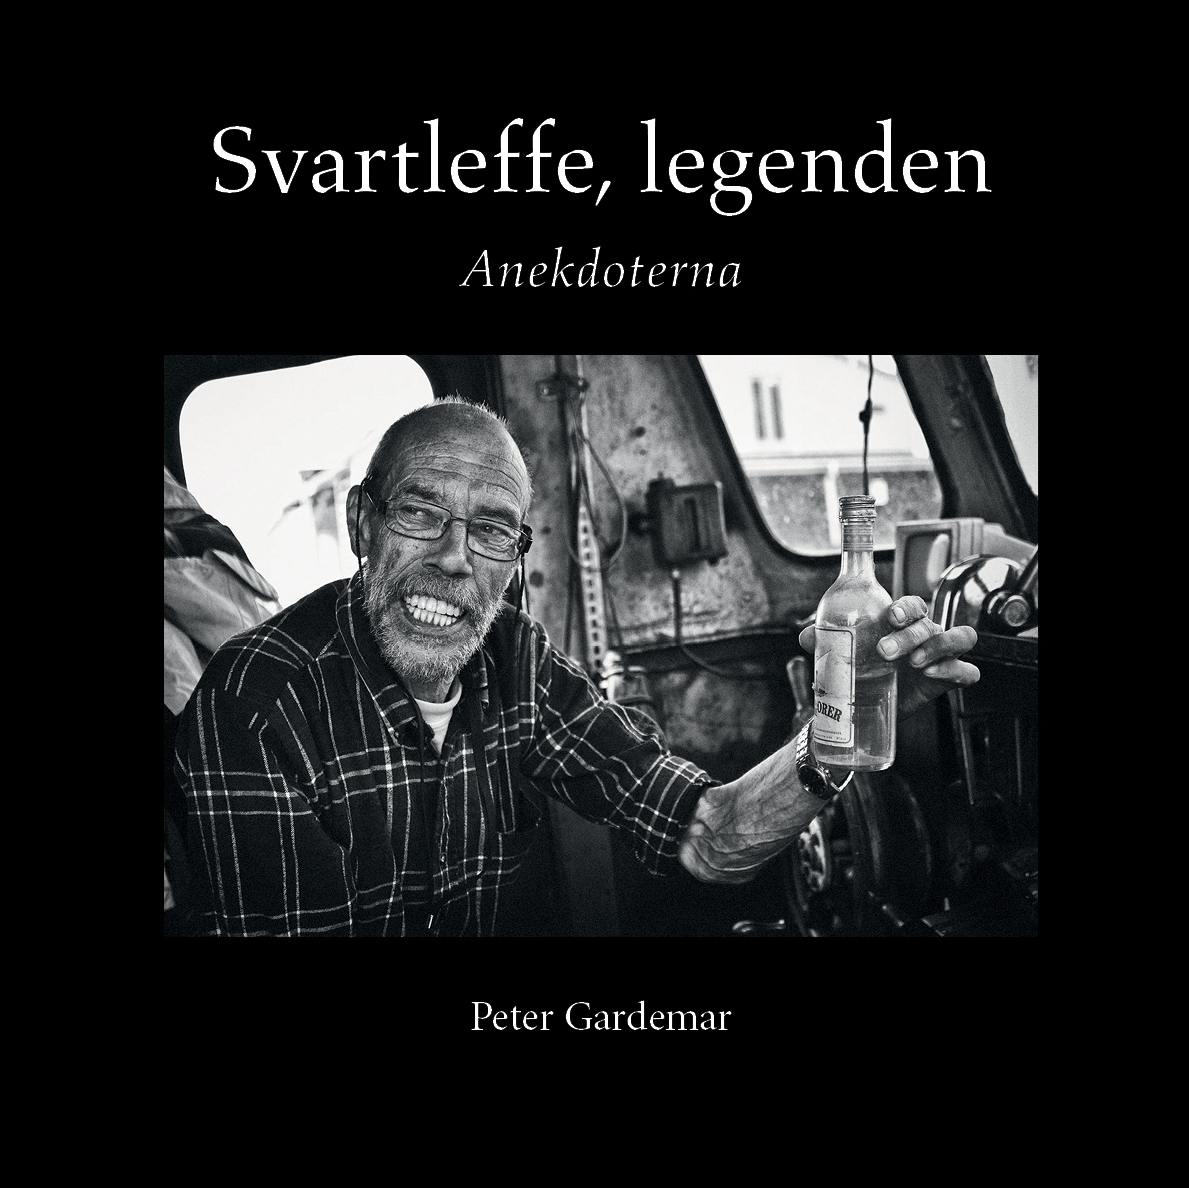 Svartleffe, legenden